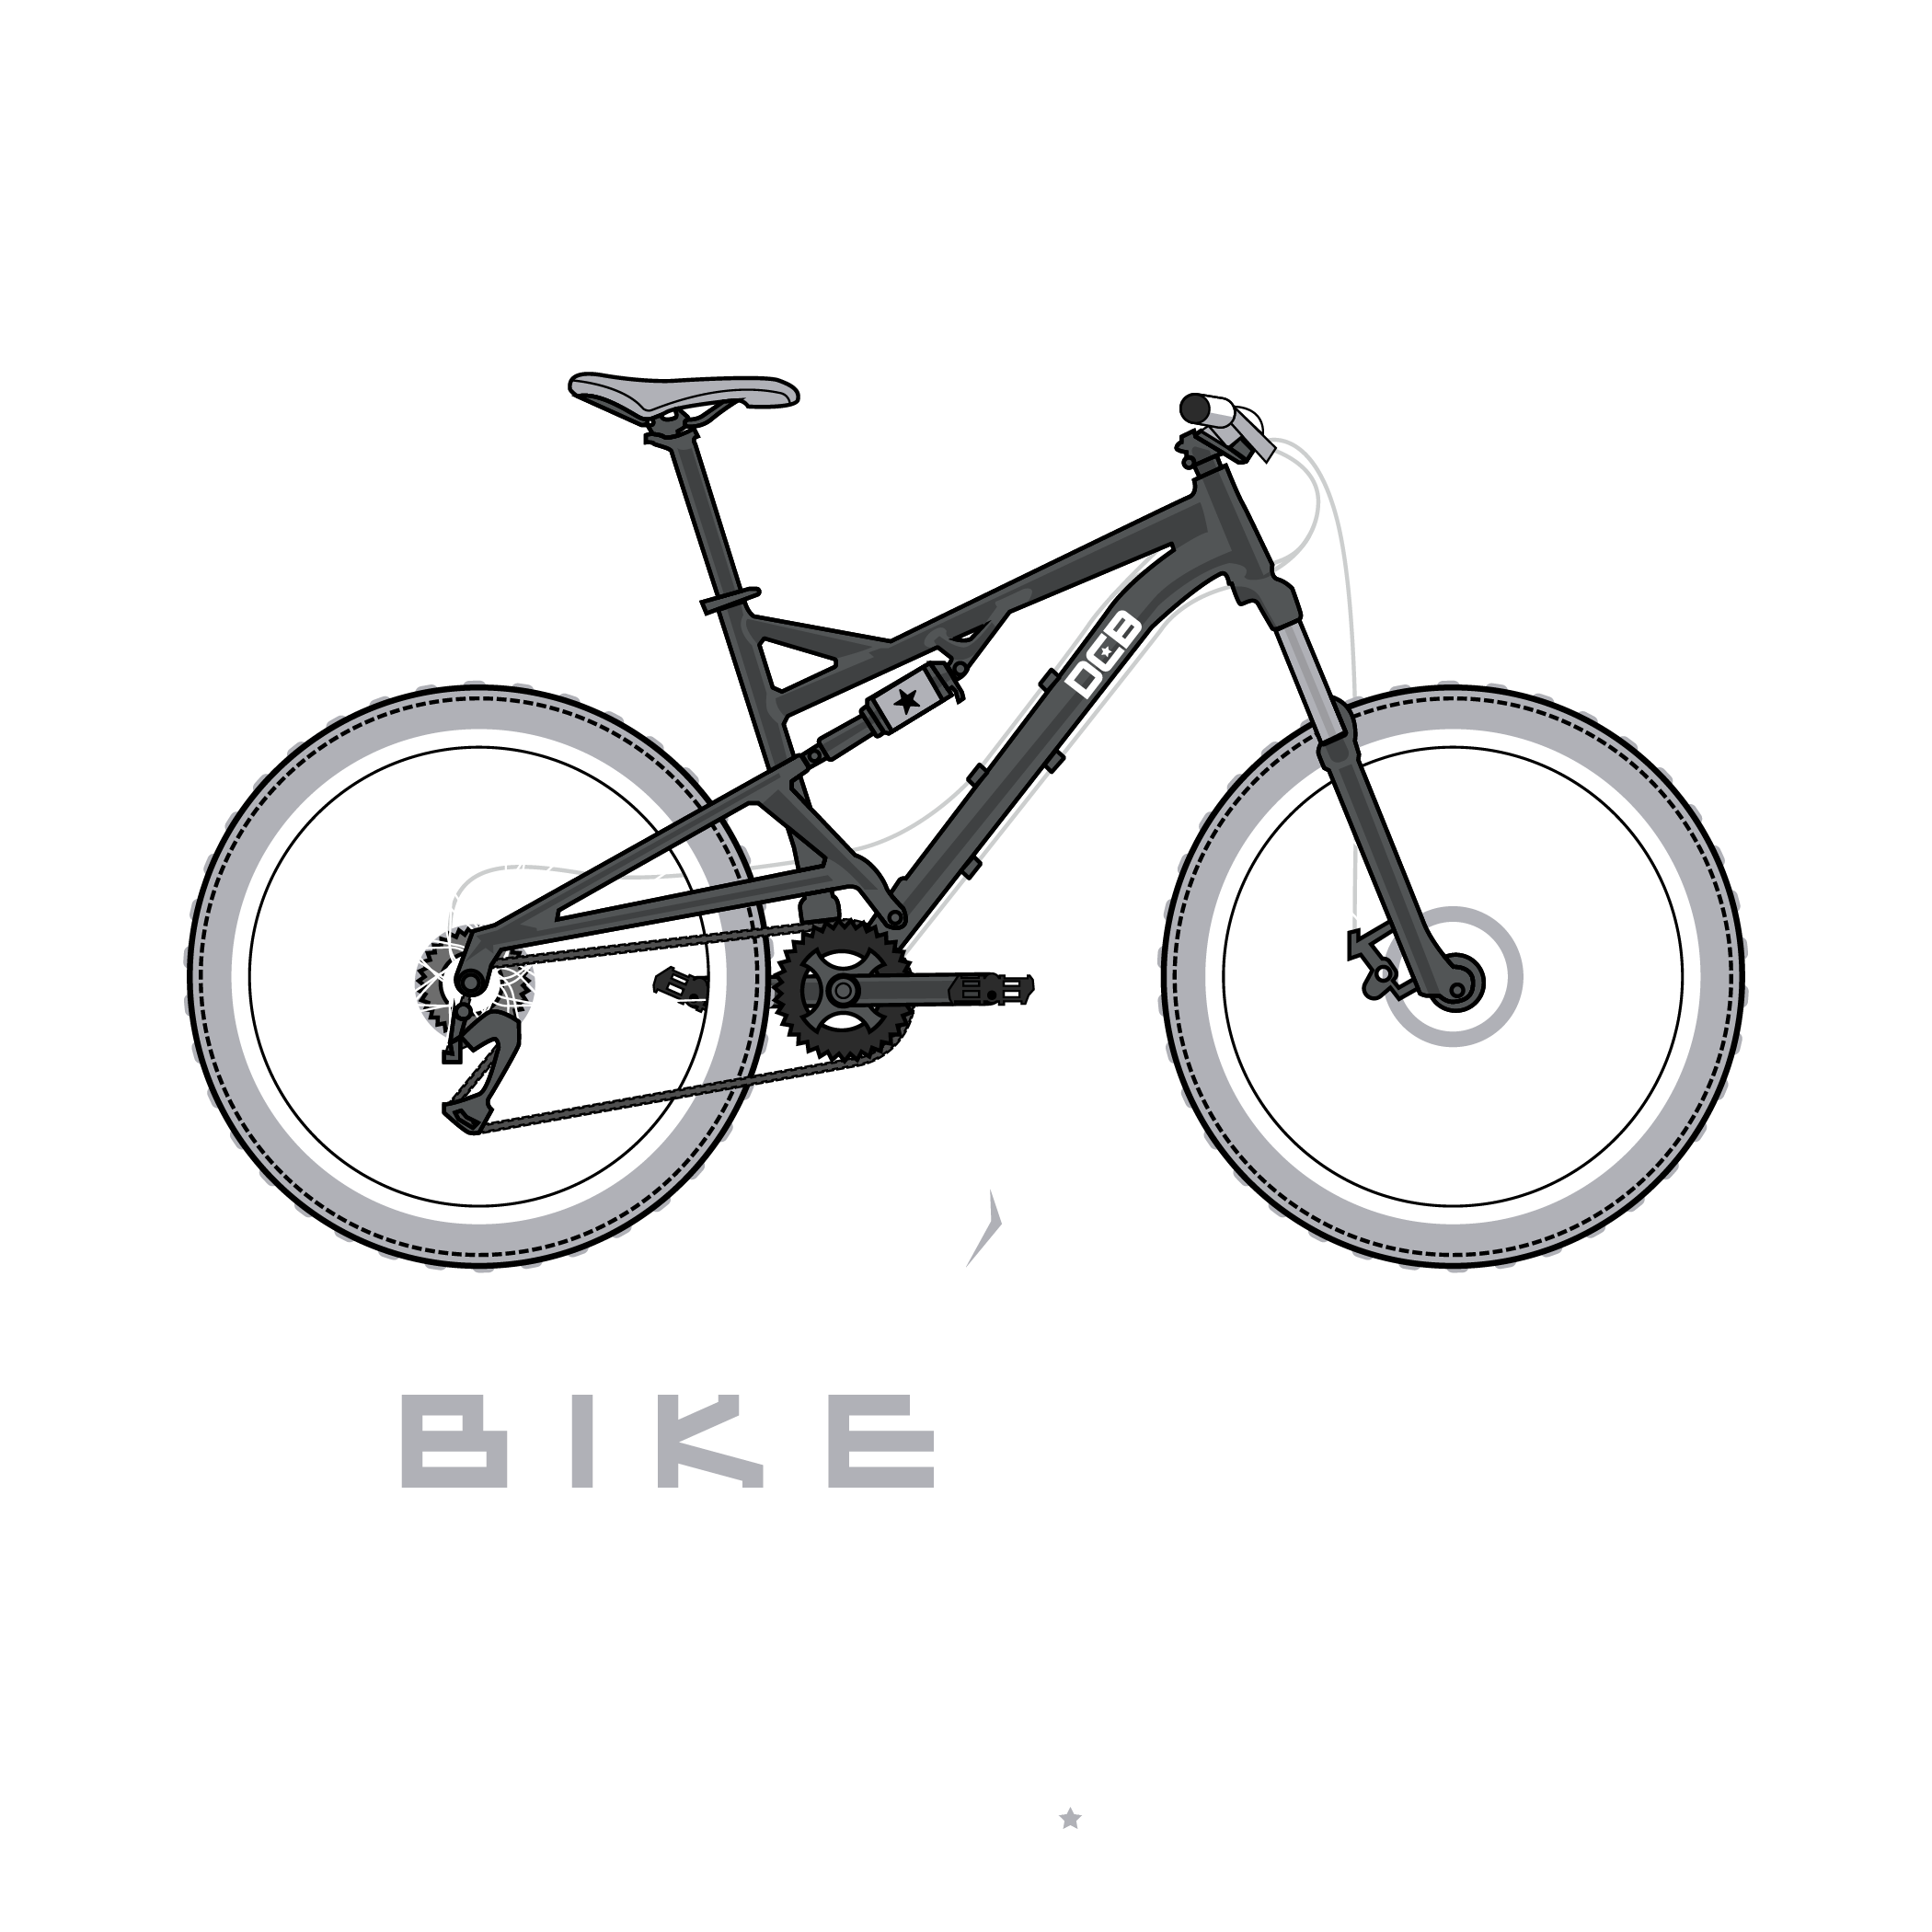 Bike Life Full Suspension Night Rider.png